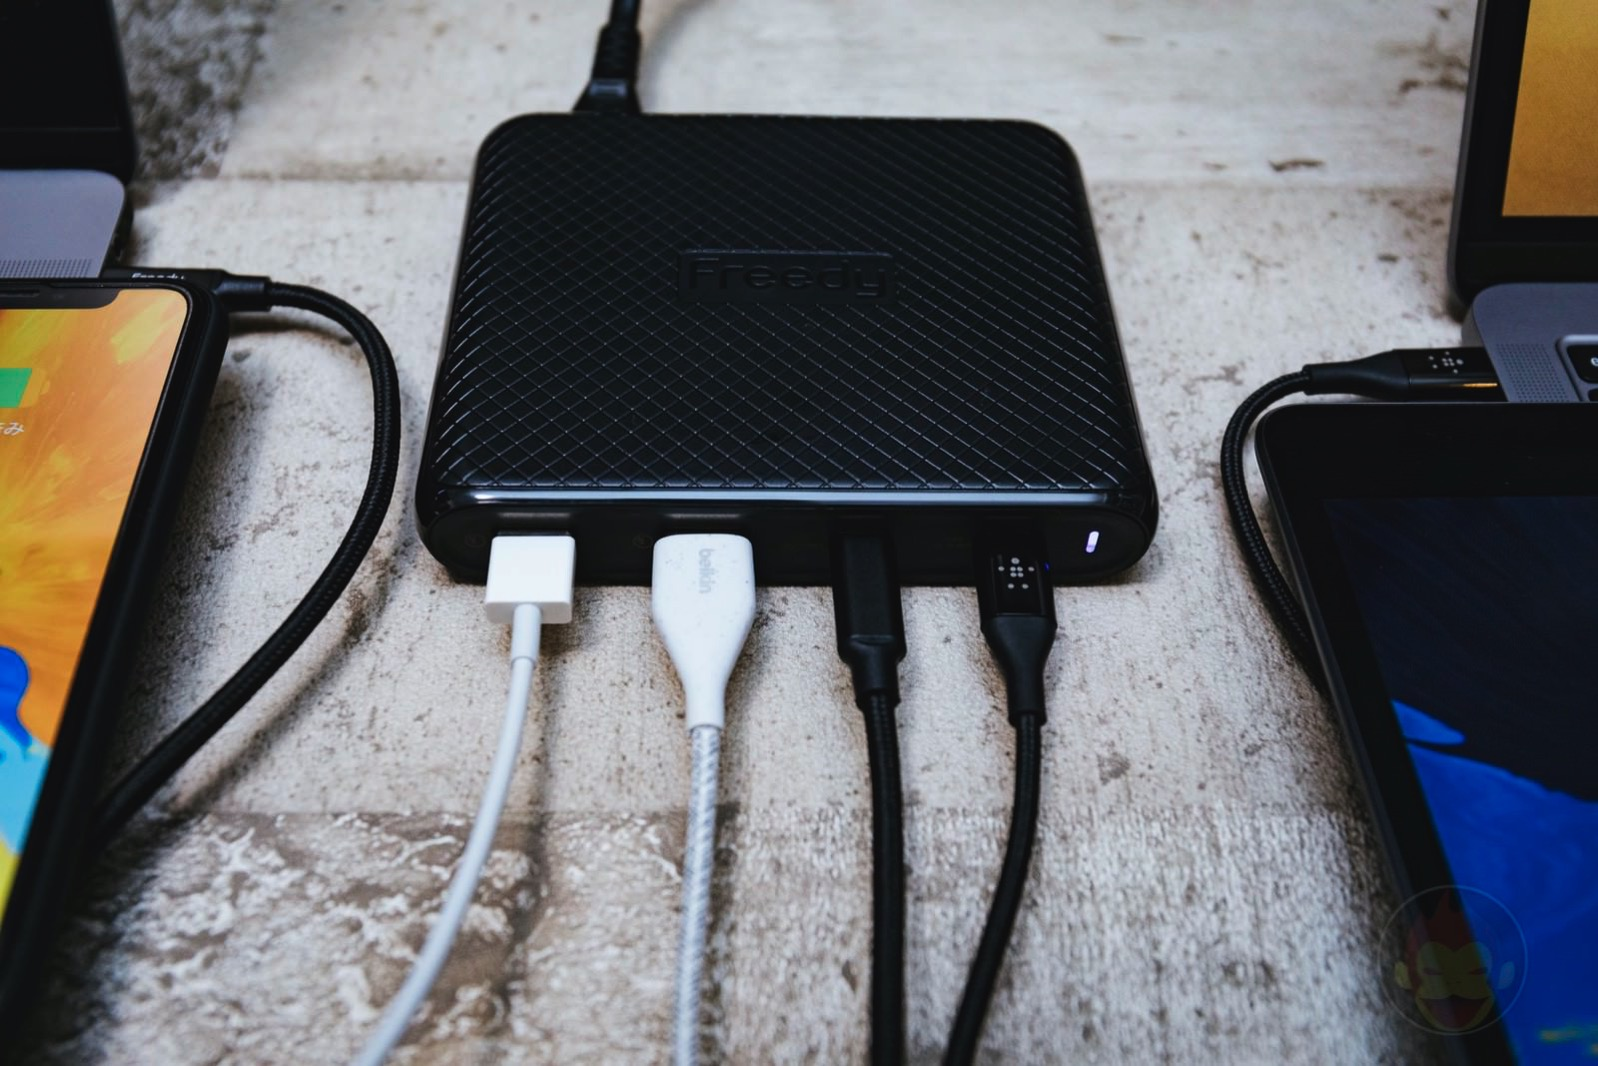 Freedy-90W-Multiport-Charger-Review-07.jpg